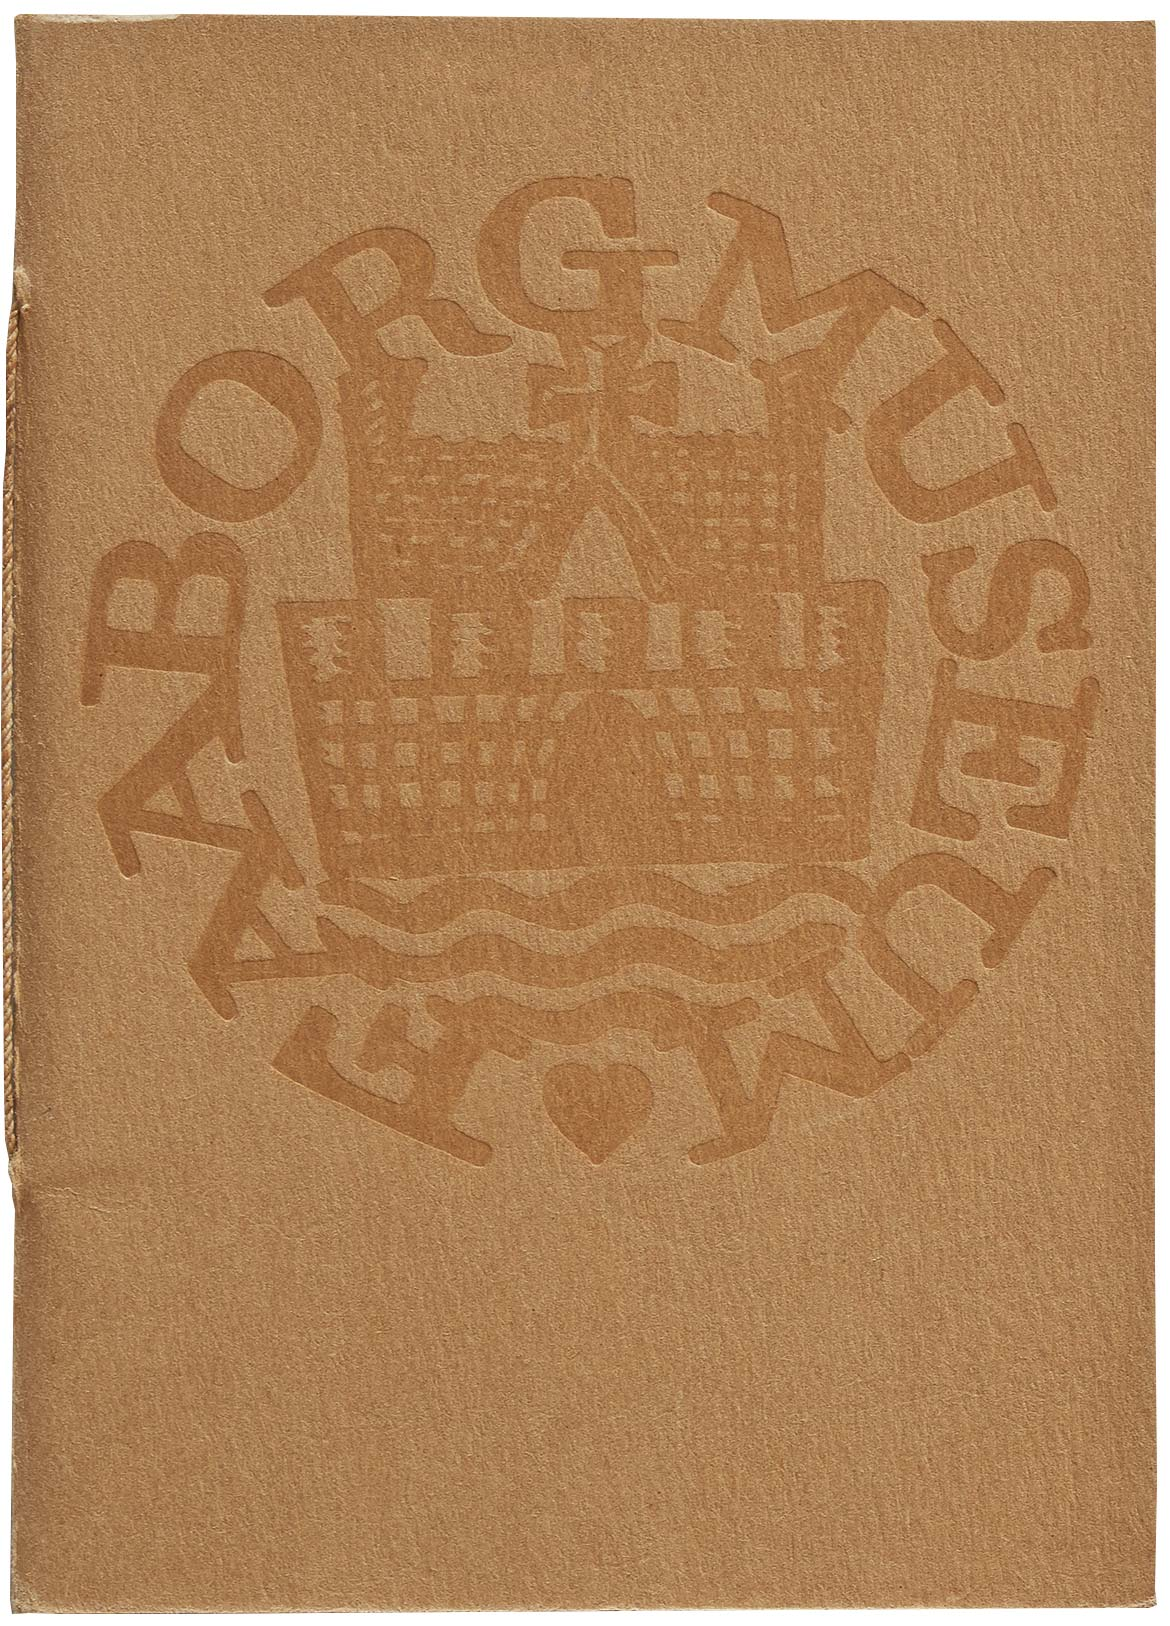 Faaborg Museum's logo on the cover of the first edition of the museum catalogue by Knud V. Engelhardt, 1916.